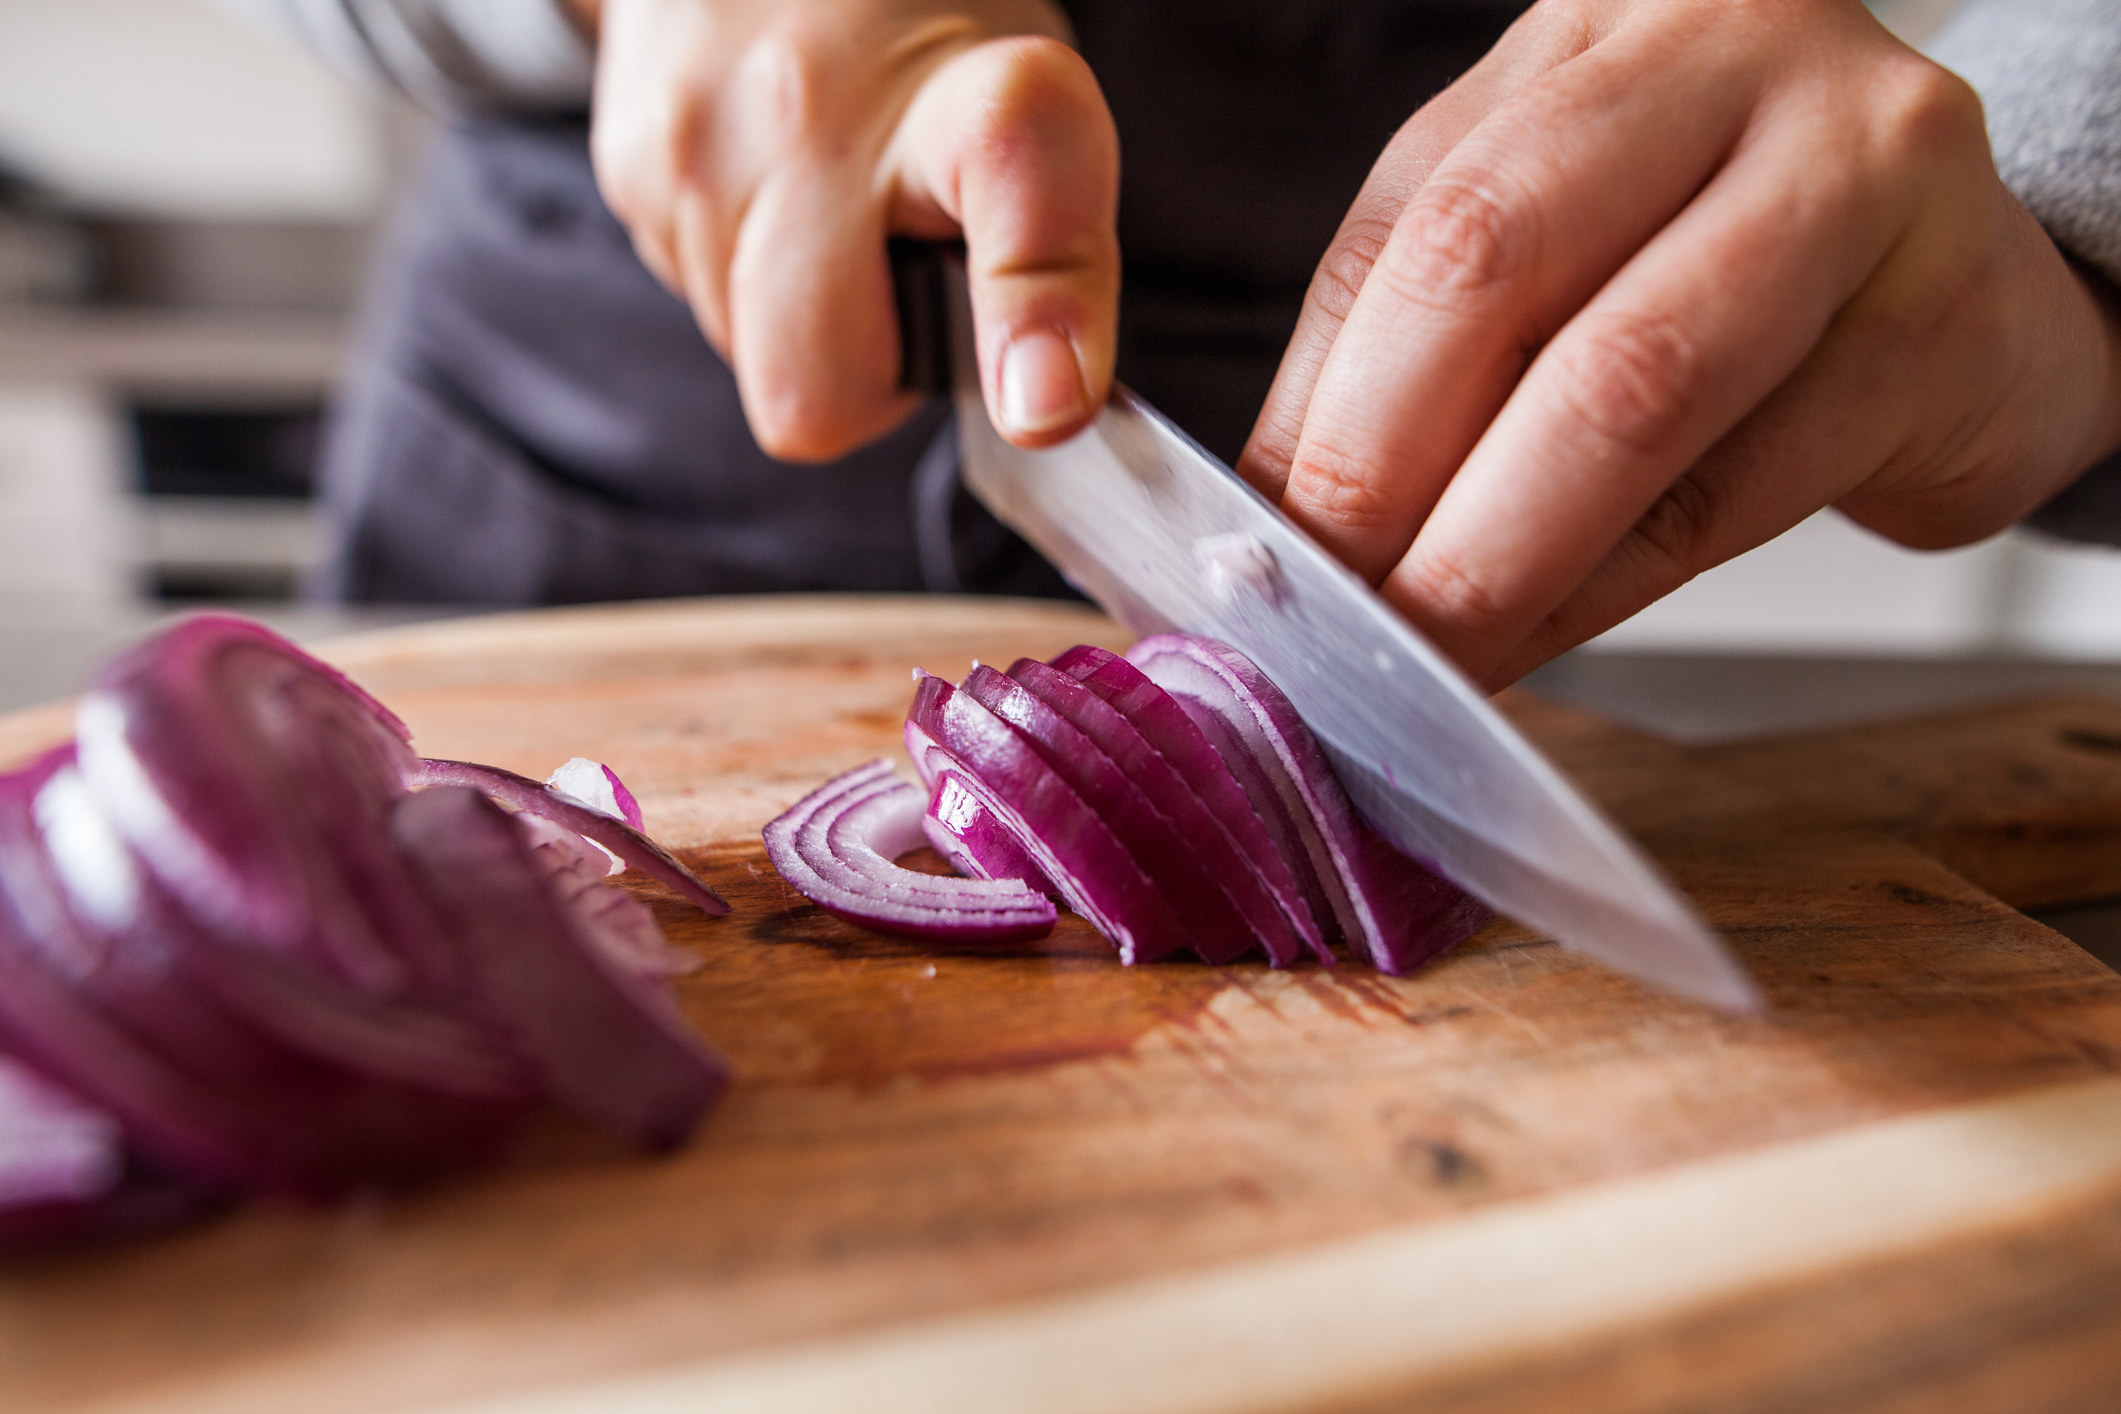 Slicing red onion with a sharp knife.